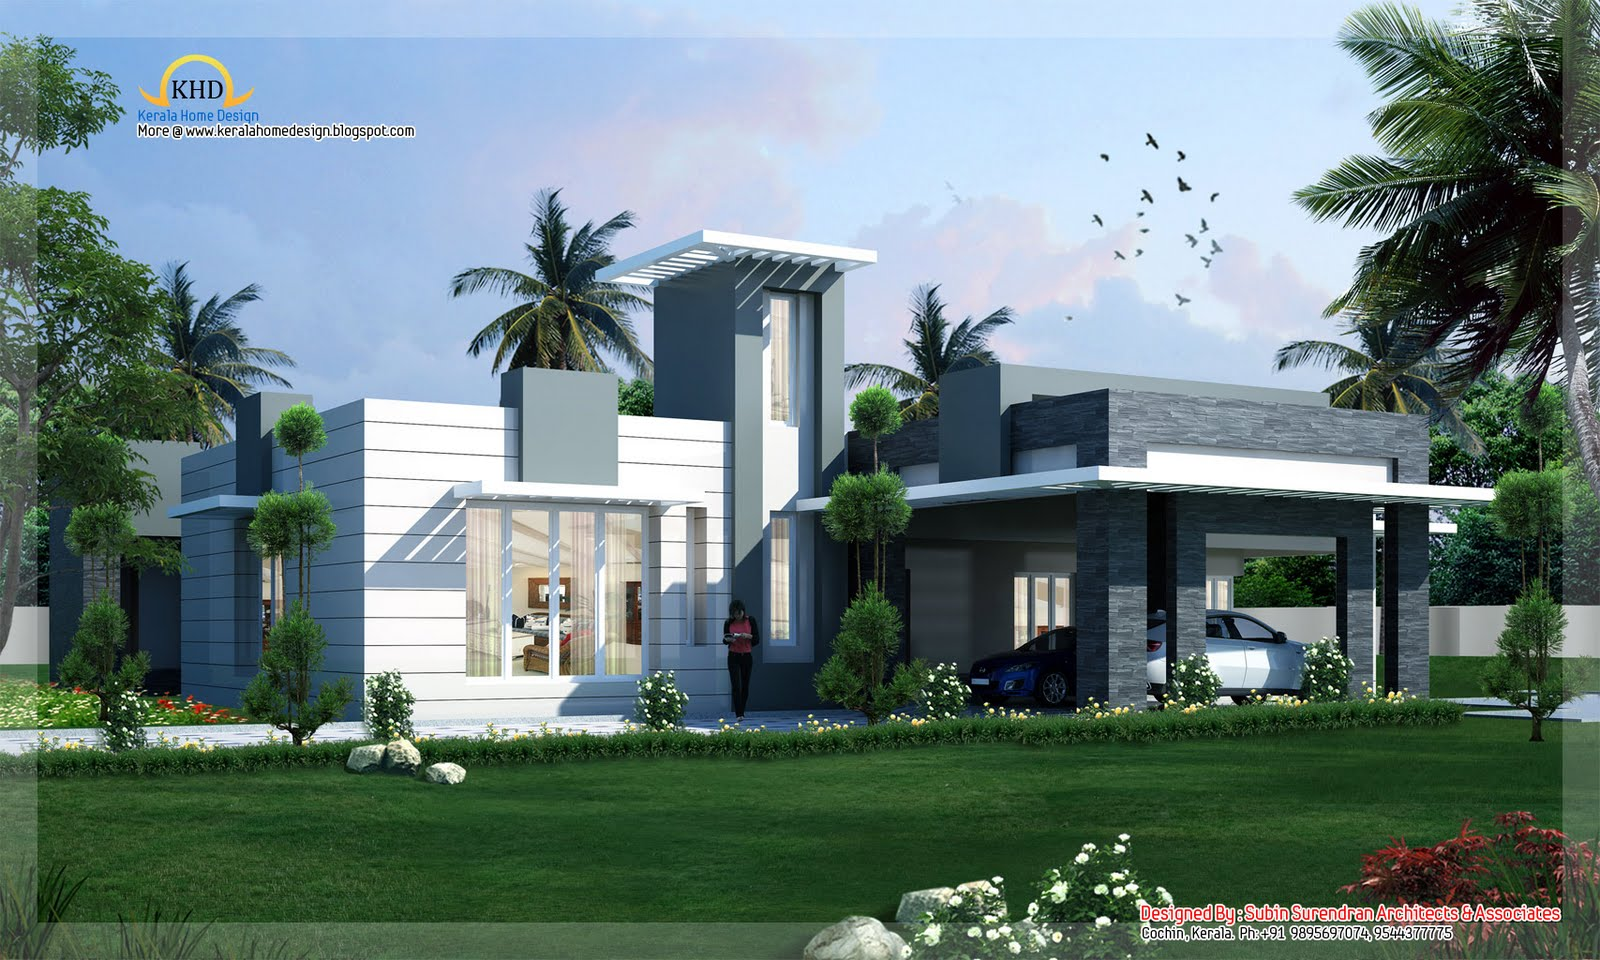 Storey Bungalow House Design Malaysia 4884 Wallpapers Home 1600x960